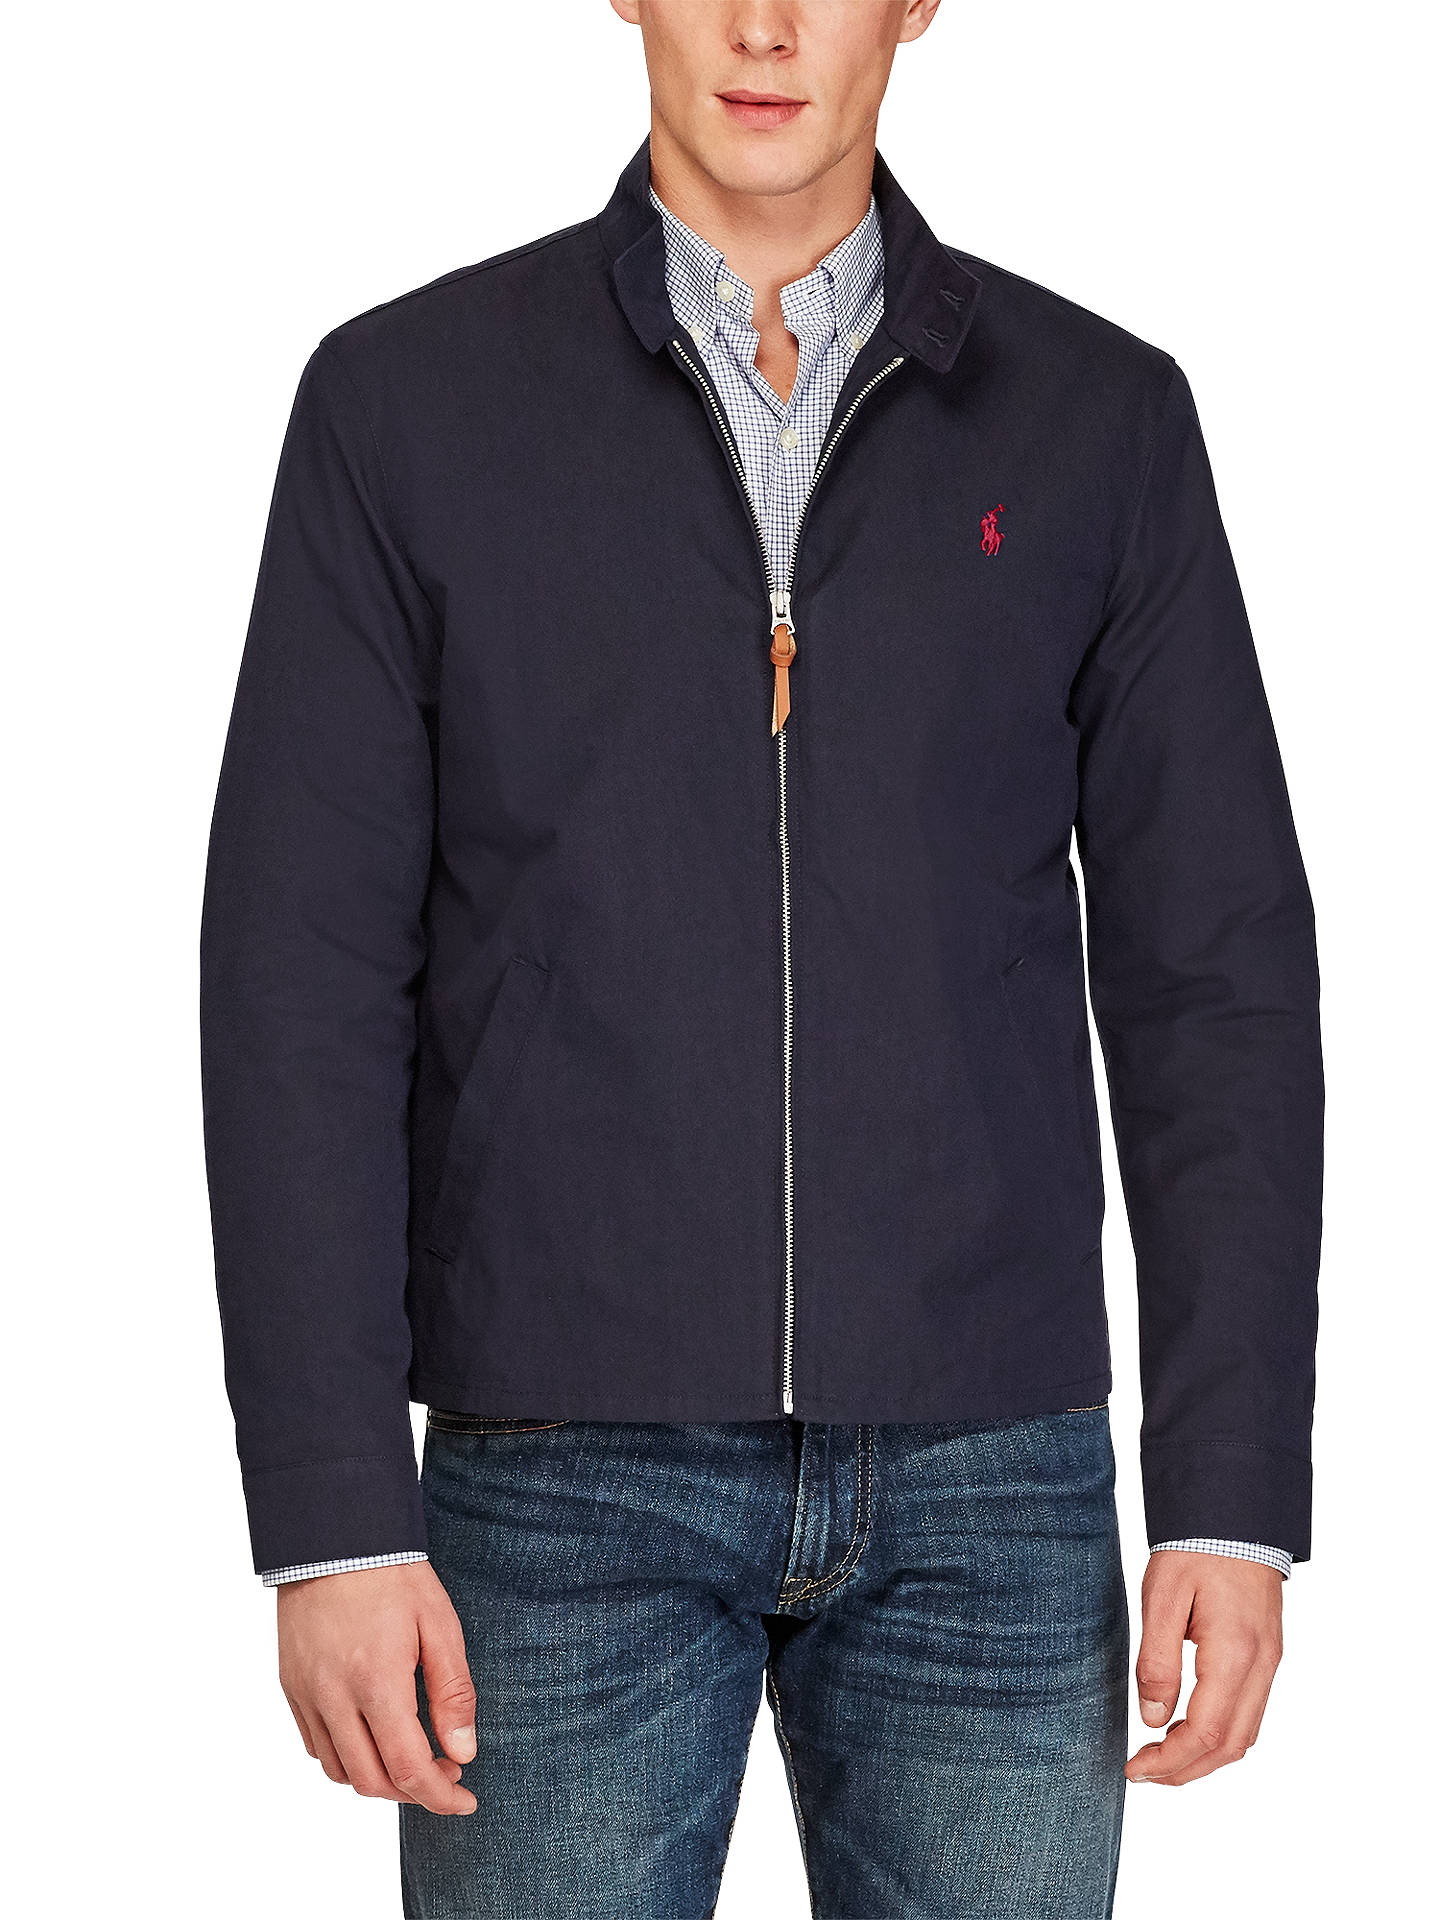 2cac373848ca Polo Ralph Lauren Barracuda Lined Jacket at John Lewis   Partners